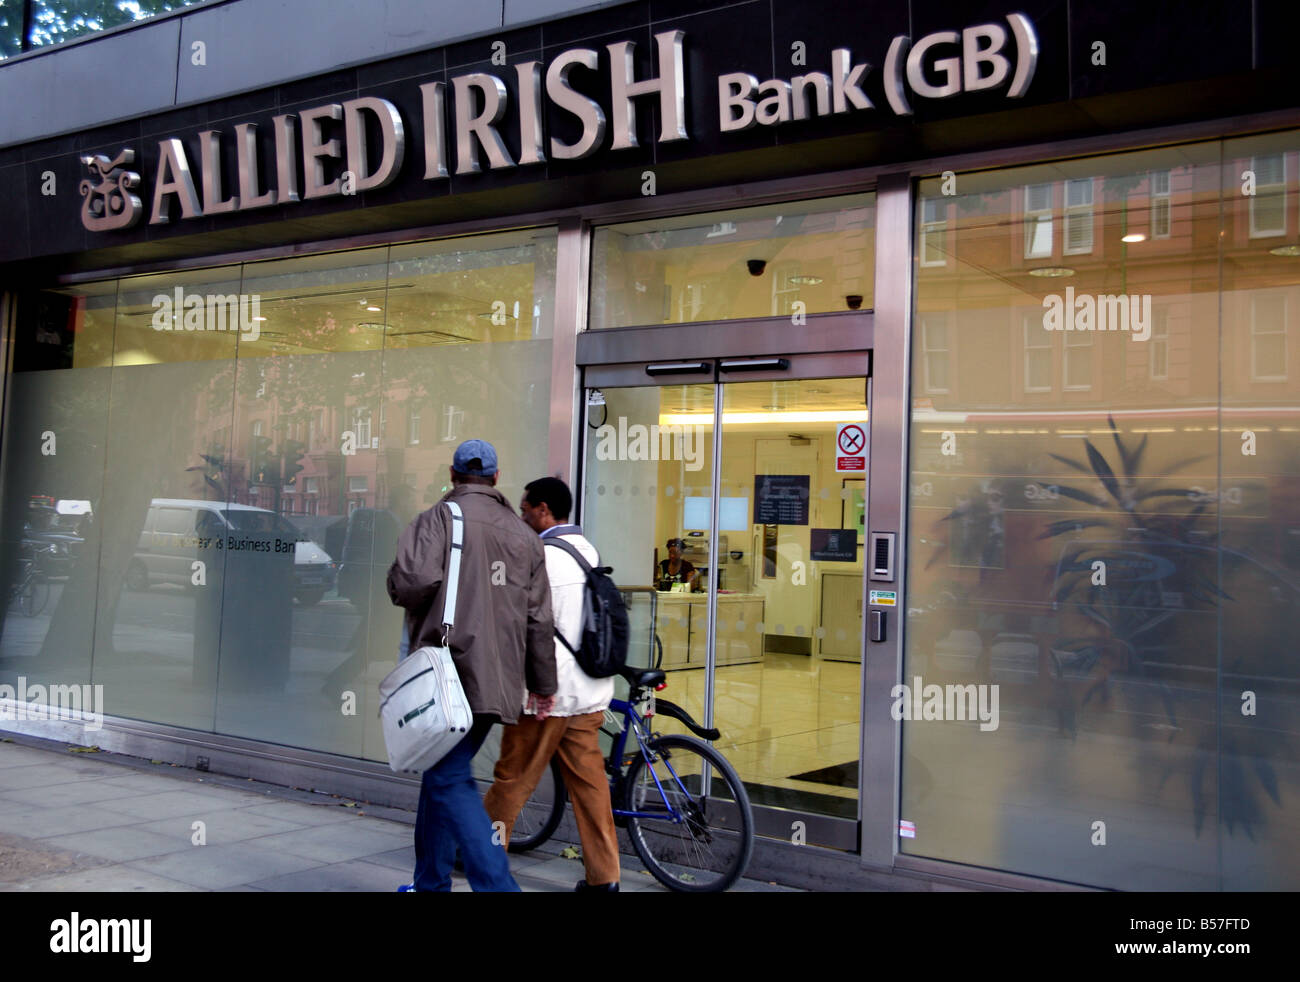 Branch of Allied Irish Bank in London - Stock Image